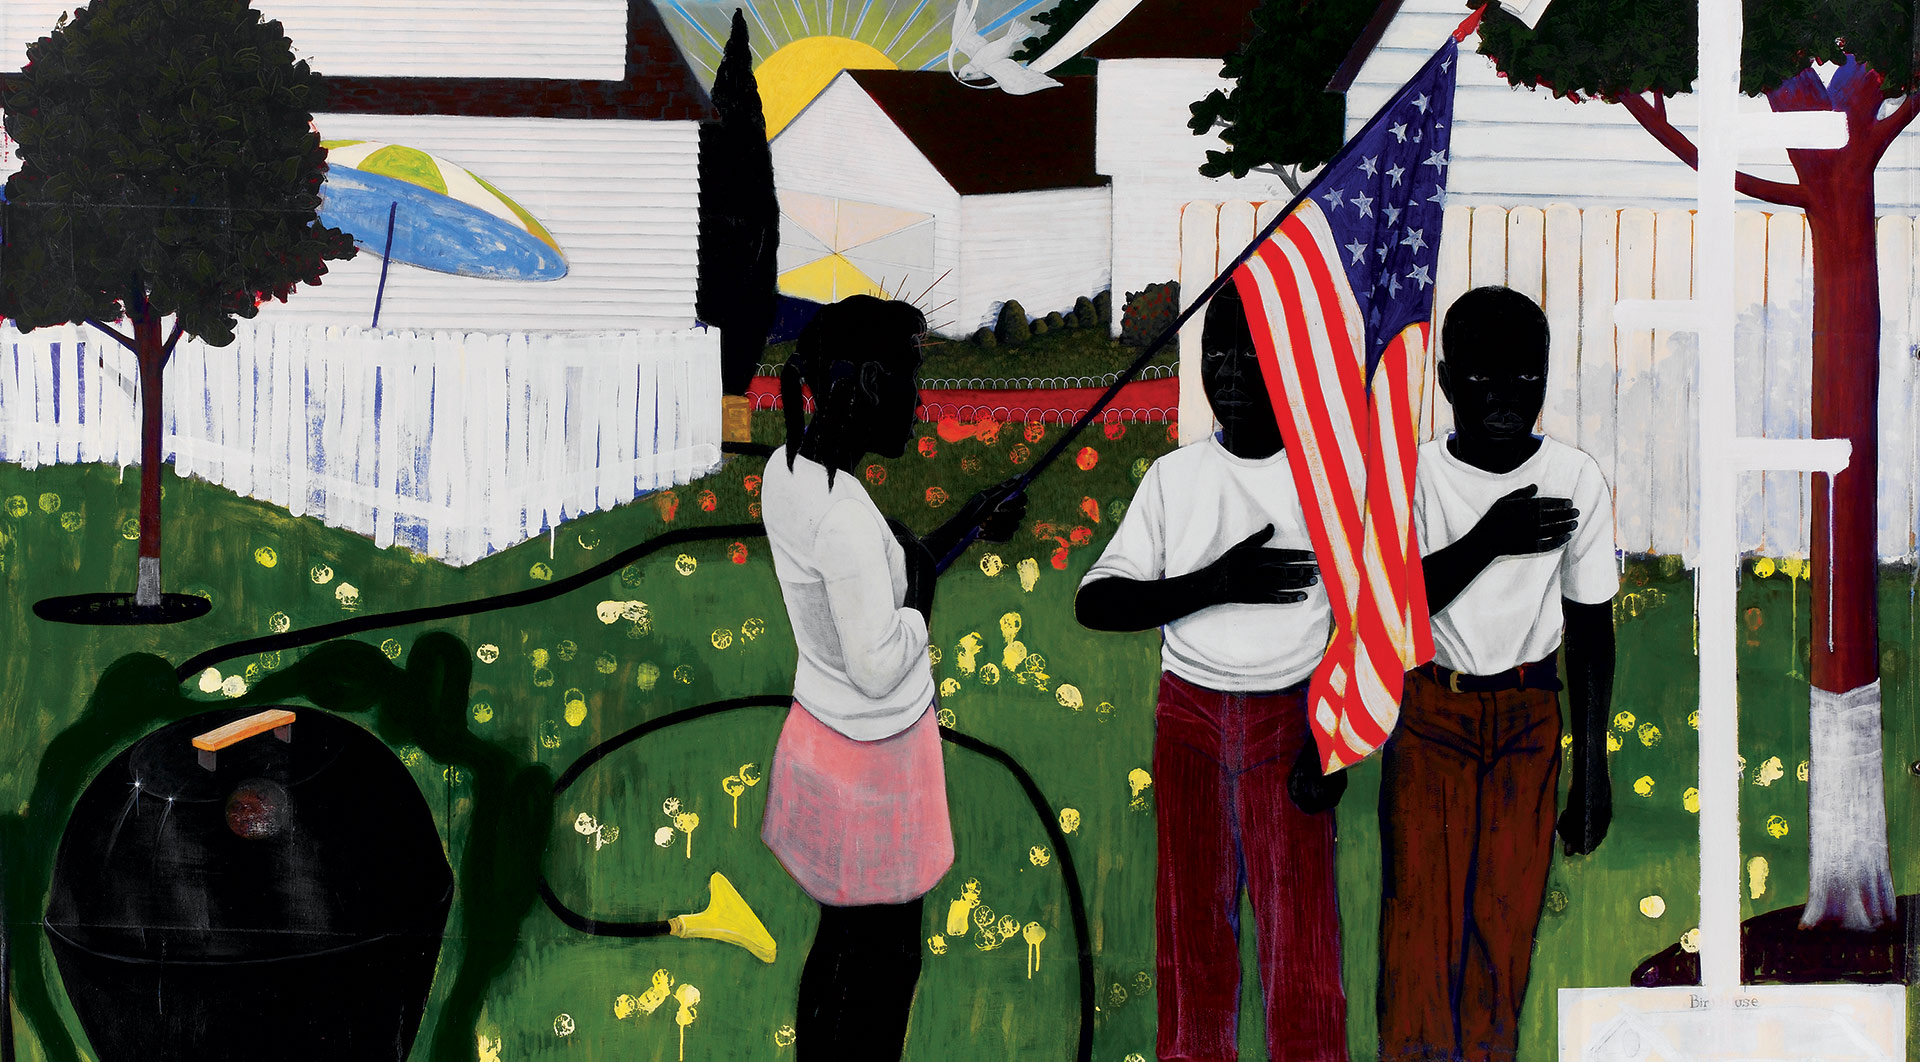 A detail from a painting by Kerry James Marshall, titled Bang, dated 1994.